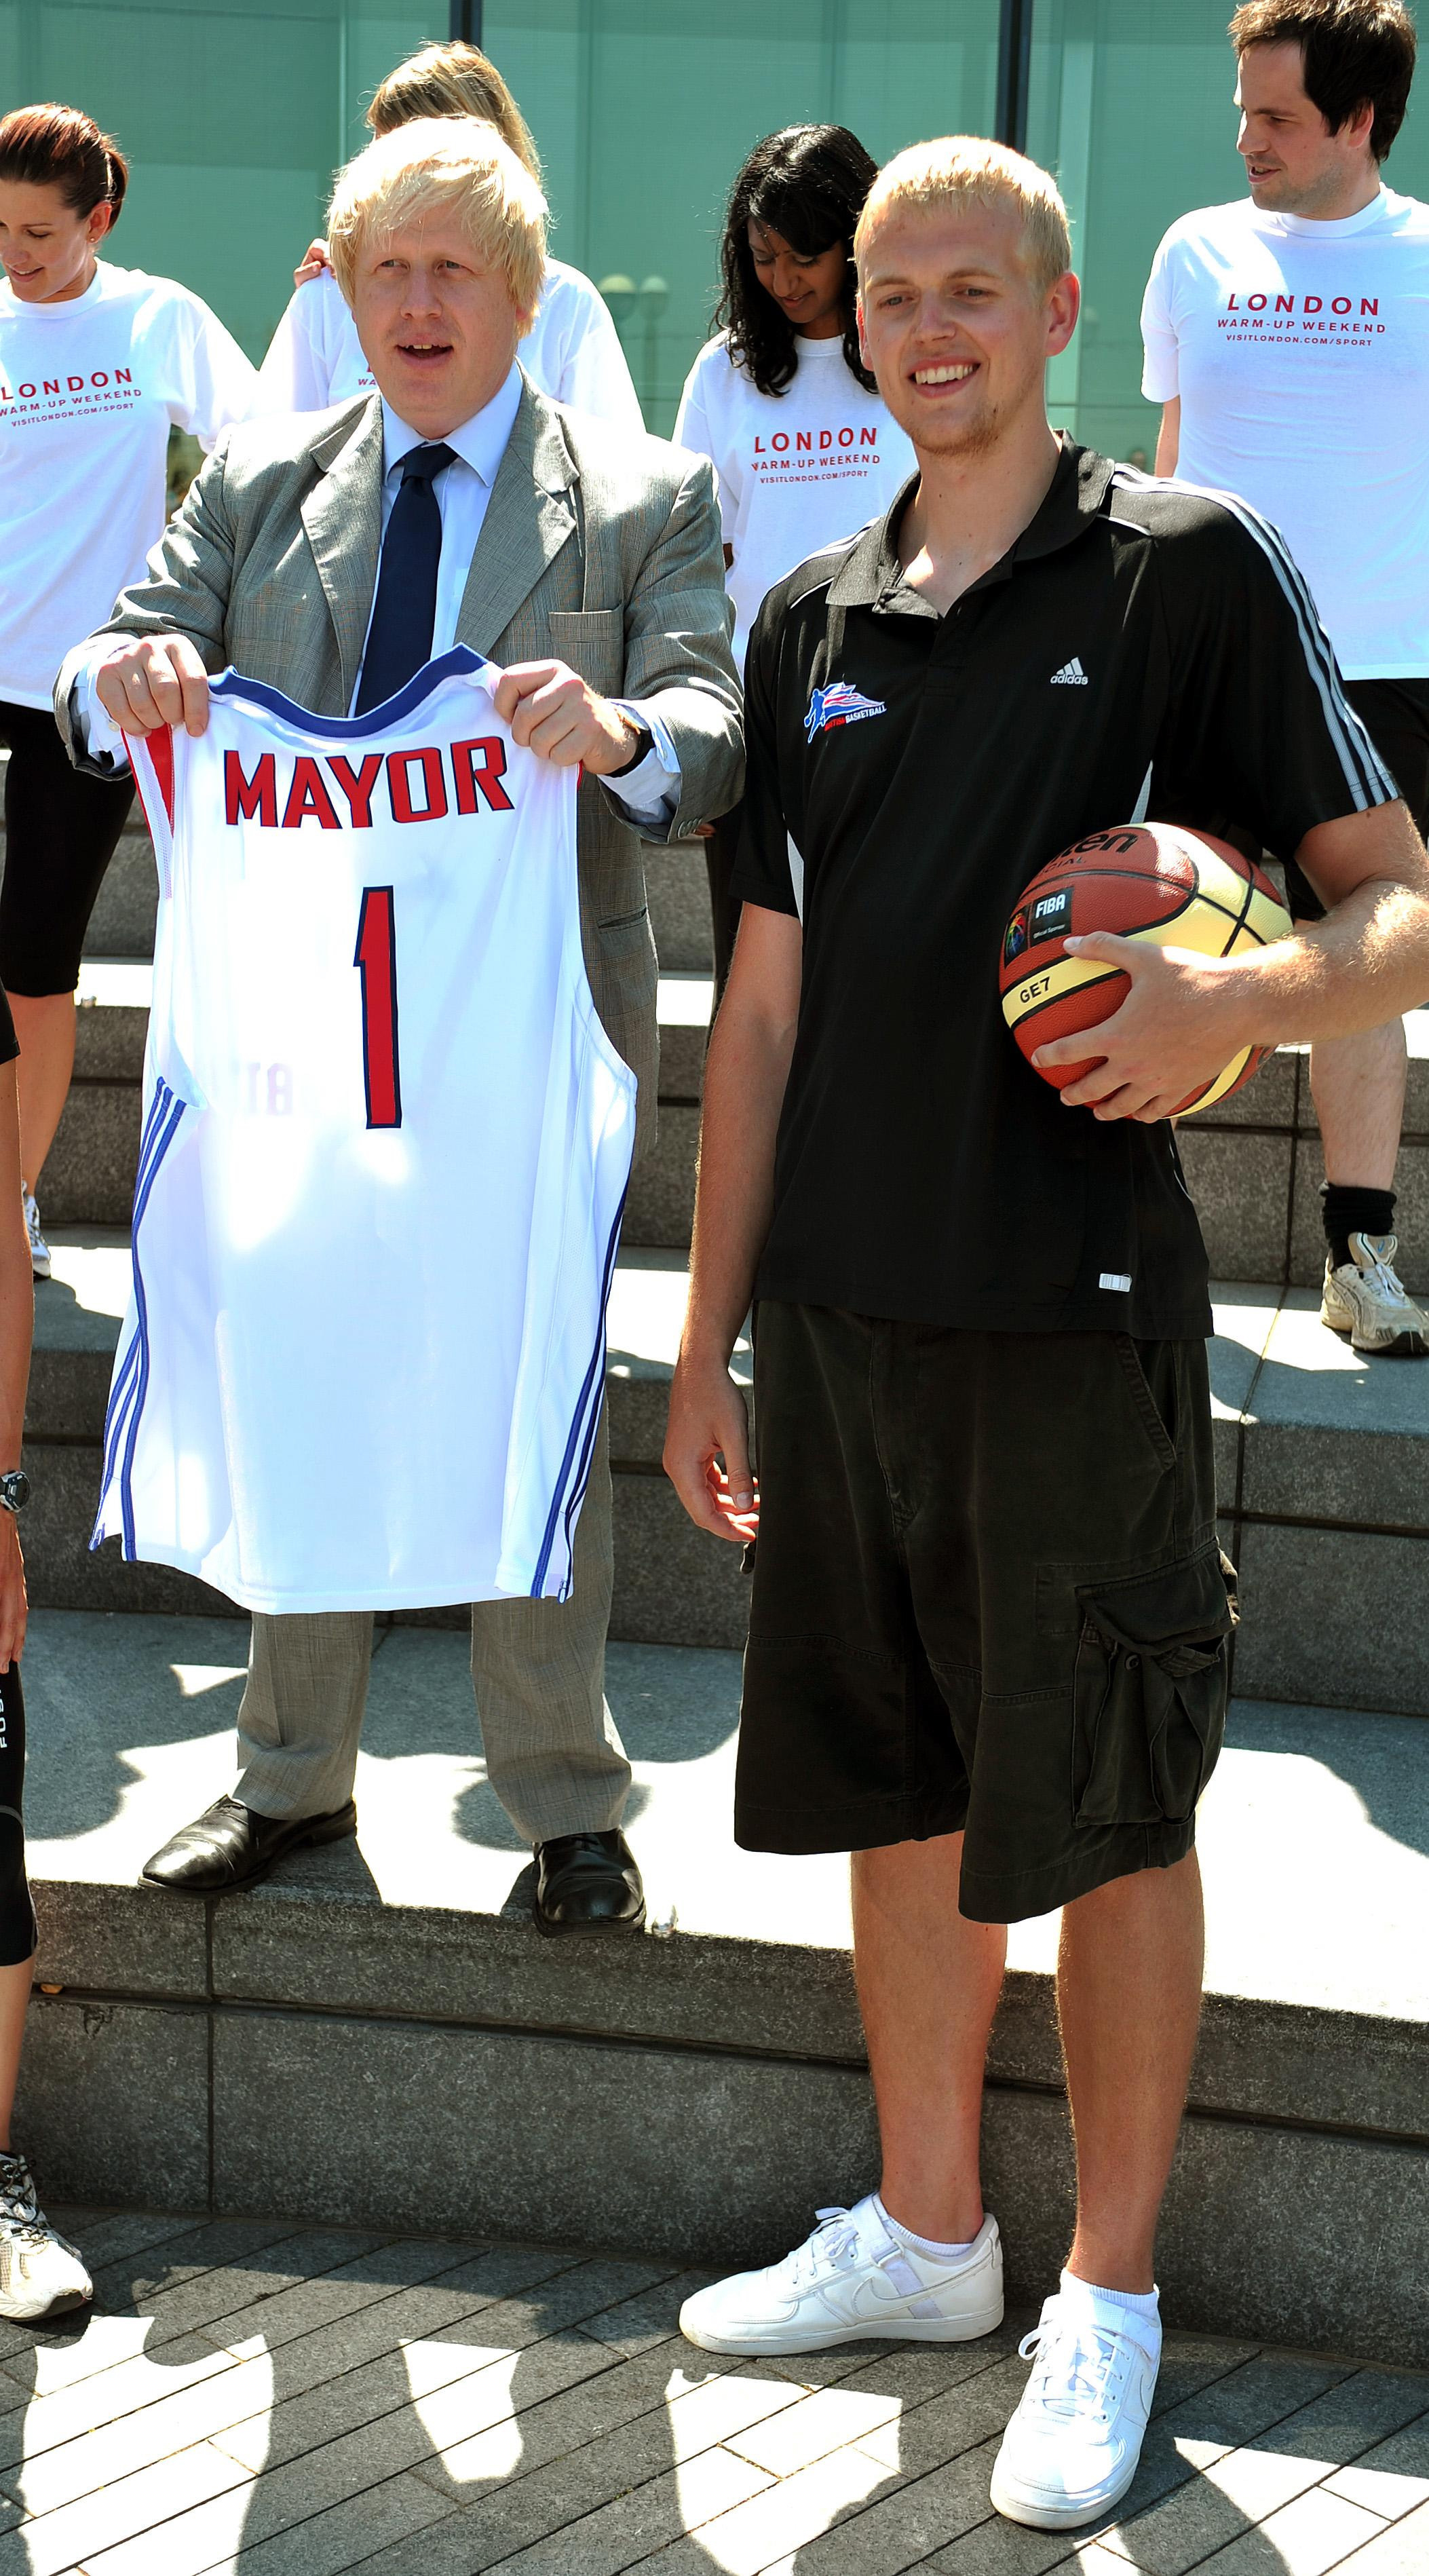 The Mayor of London Boris Johnson stands with basketball player Daniel Clark, during a photocall to promote 'warm up weekend', to get Londoners in the mood for the 2012 London Olympics, outside City hall in central London, this afternoon.